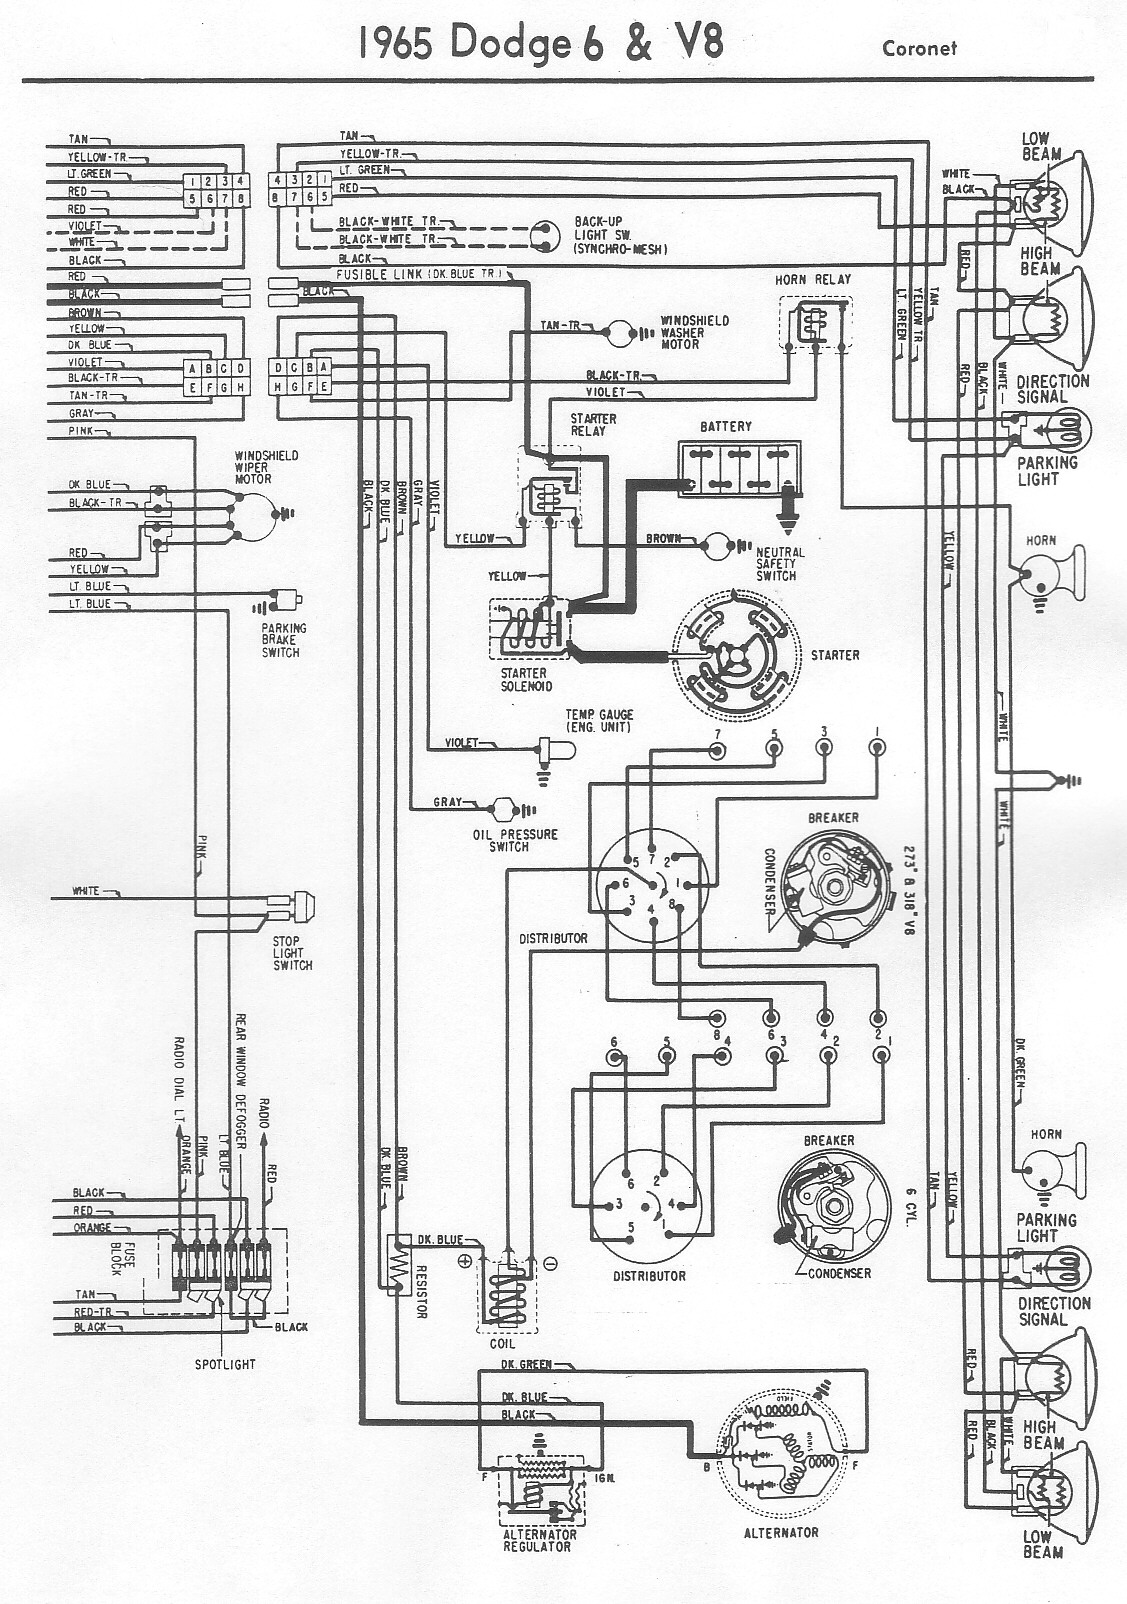 1975 dodge valiant wiring diagram schematic wiring diagram Basic Electrical Schematic Diagrams 1975 dodge valiant wiring diagram schematic schema wiring diagram1967 dodge dart wiring diagram schematic wiring block